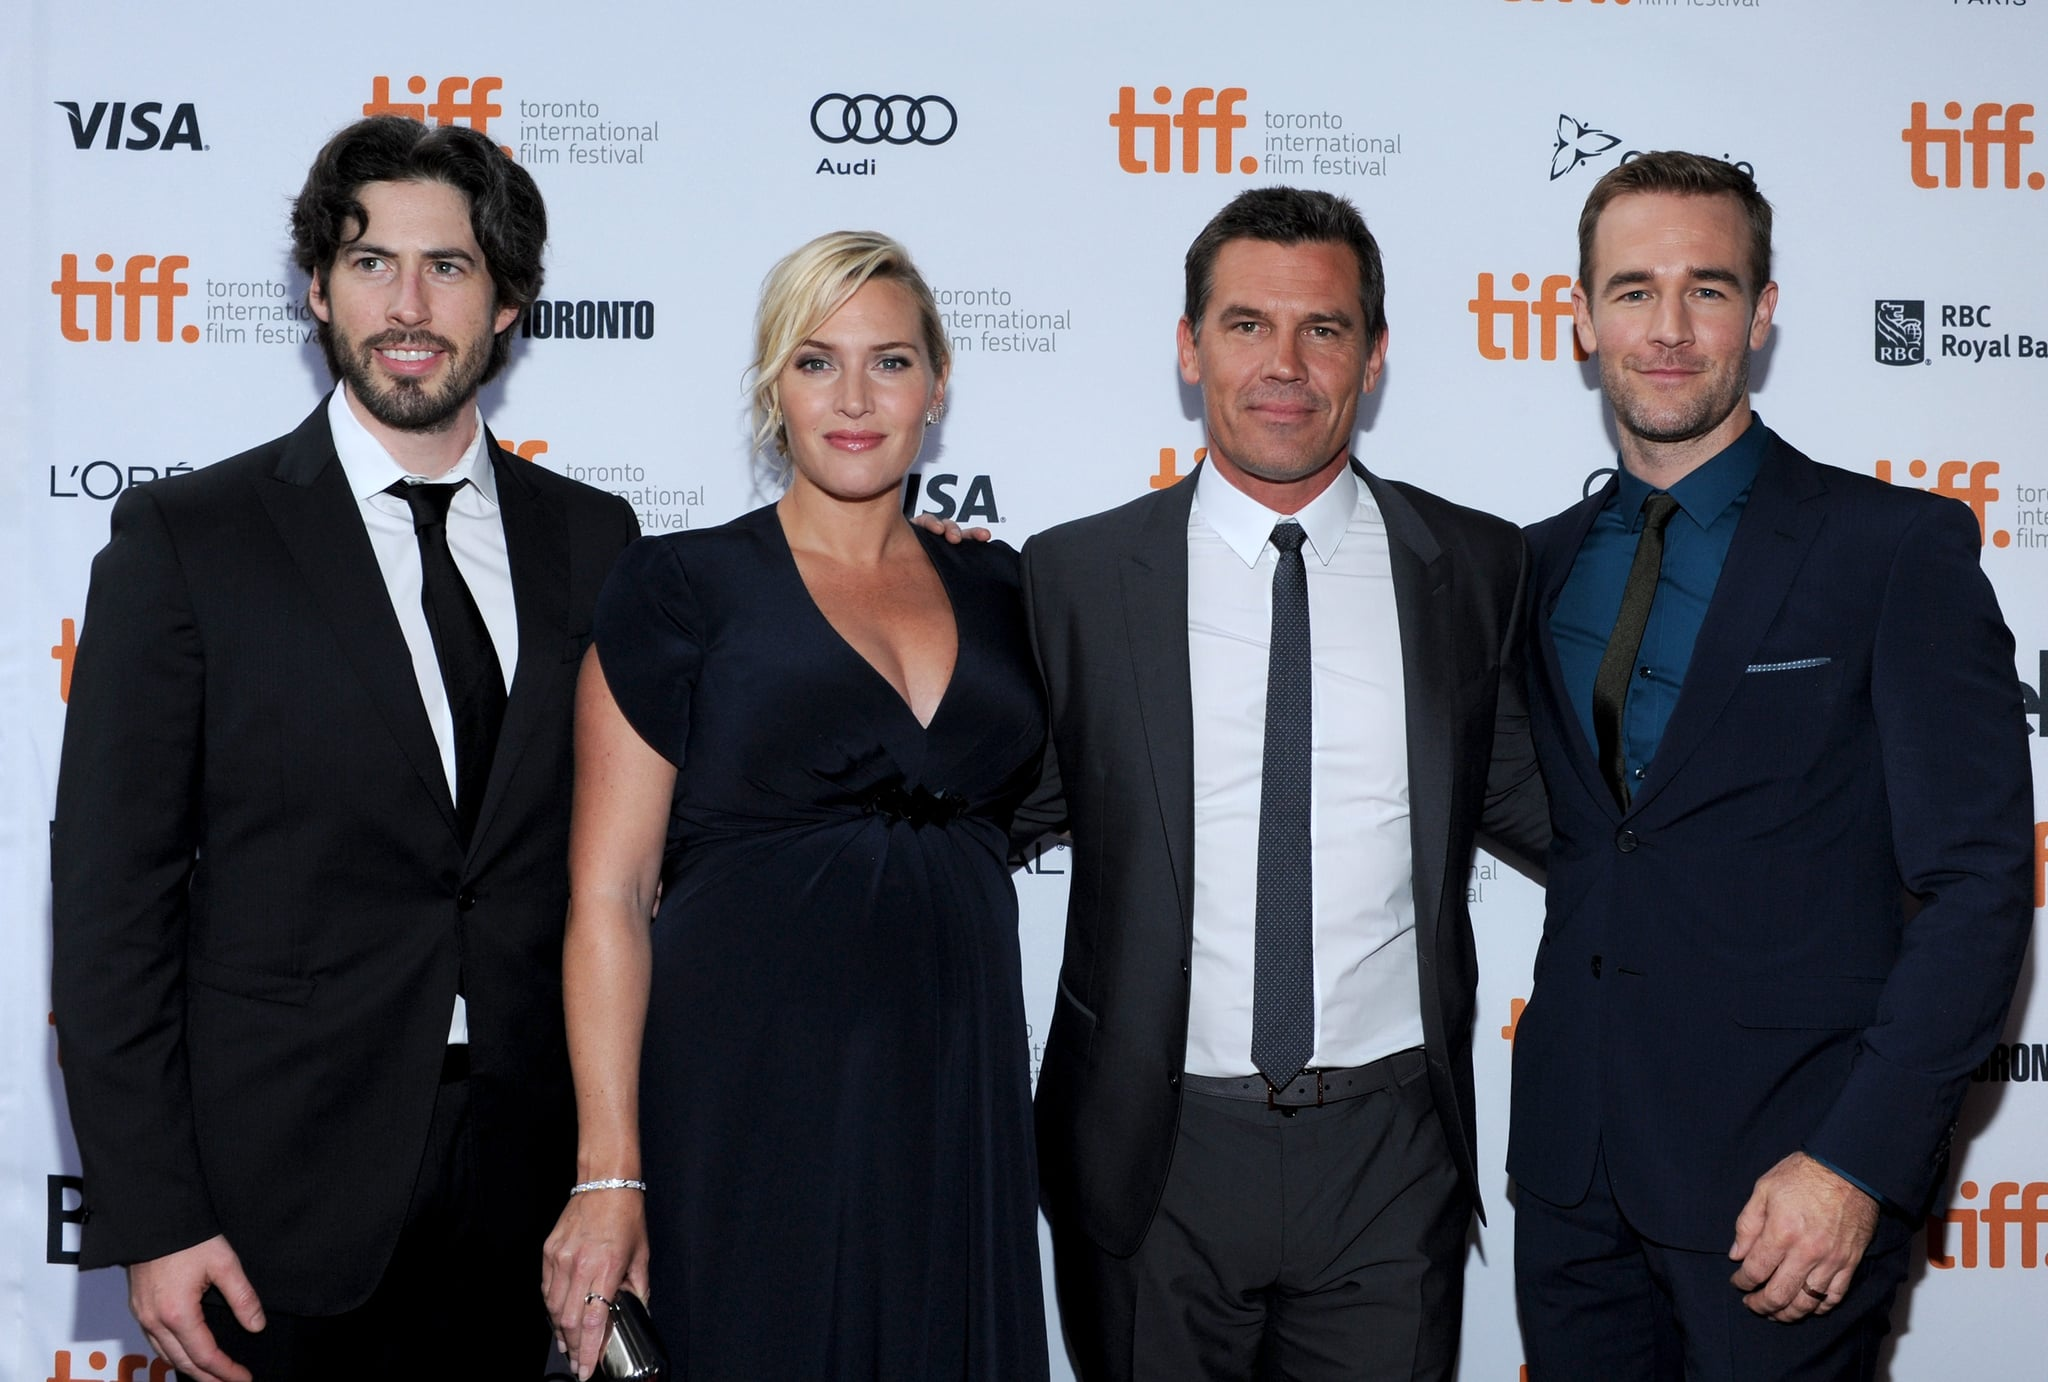 The stars and director of Labor Day linked up for the film's red carpet premiere.